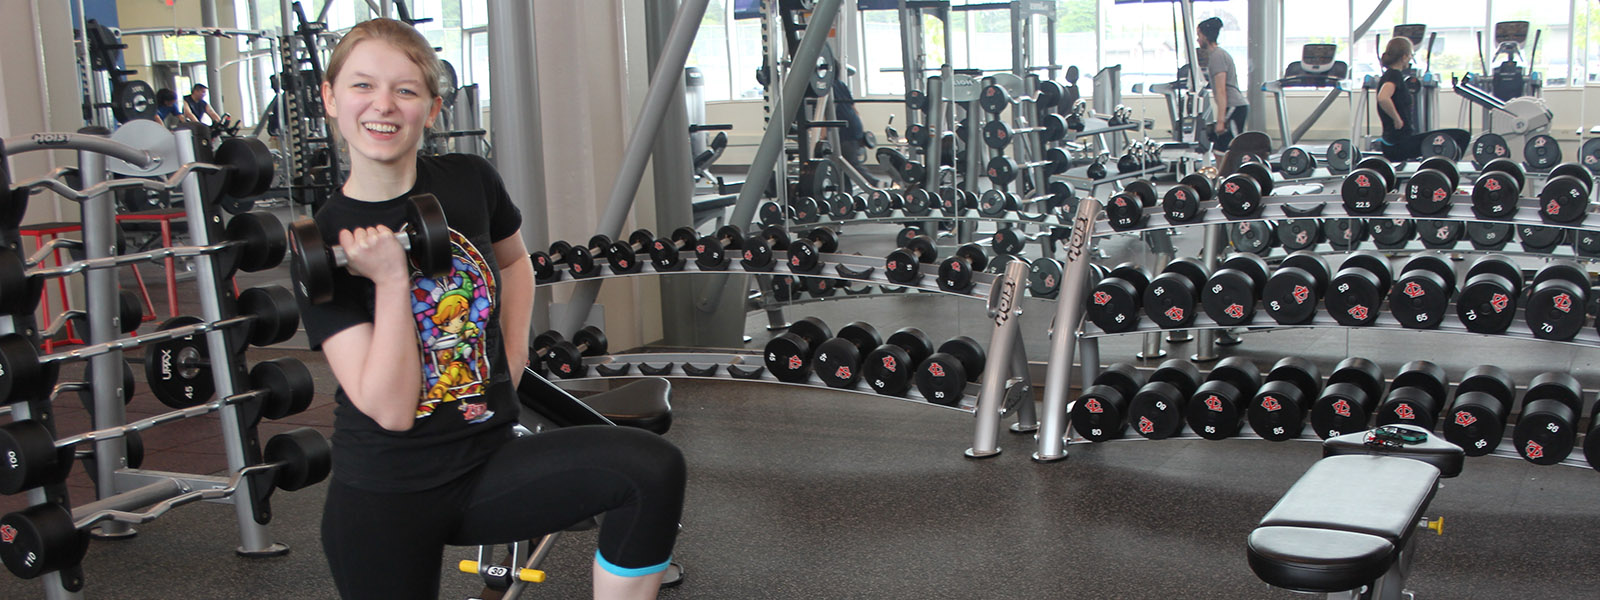 Image of student holding free weights in gym